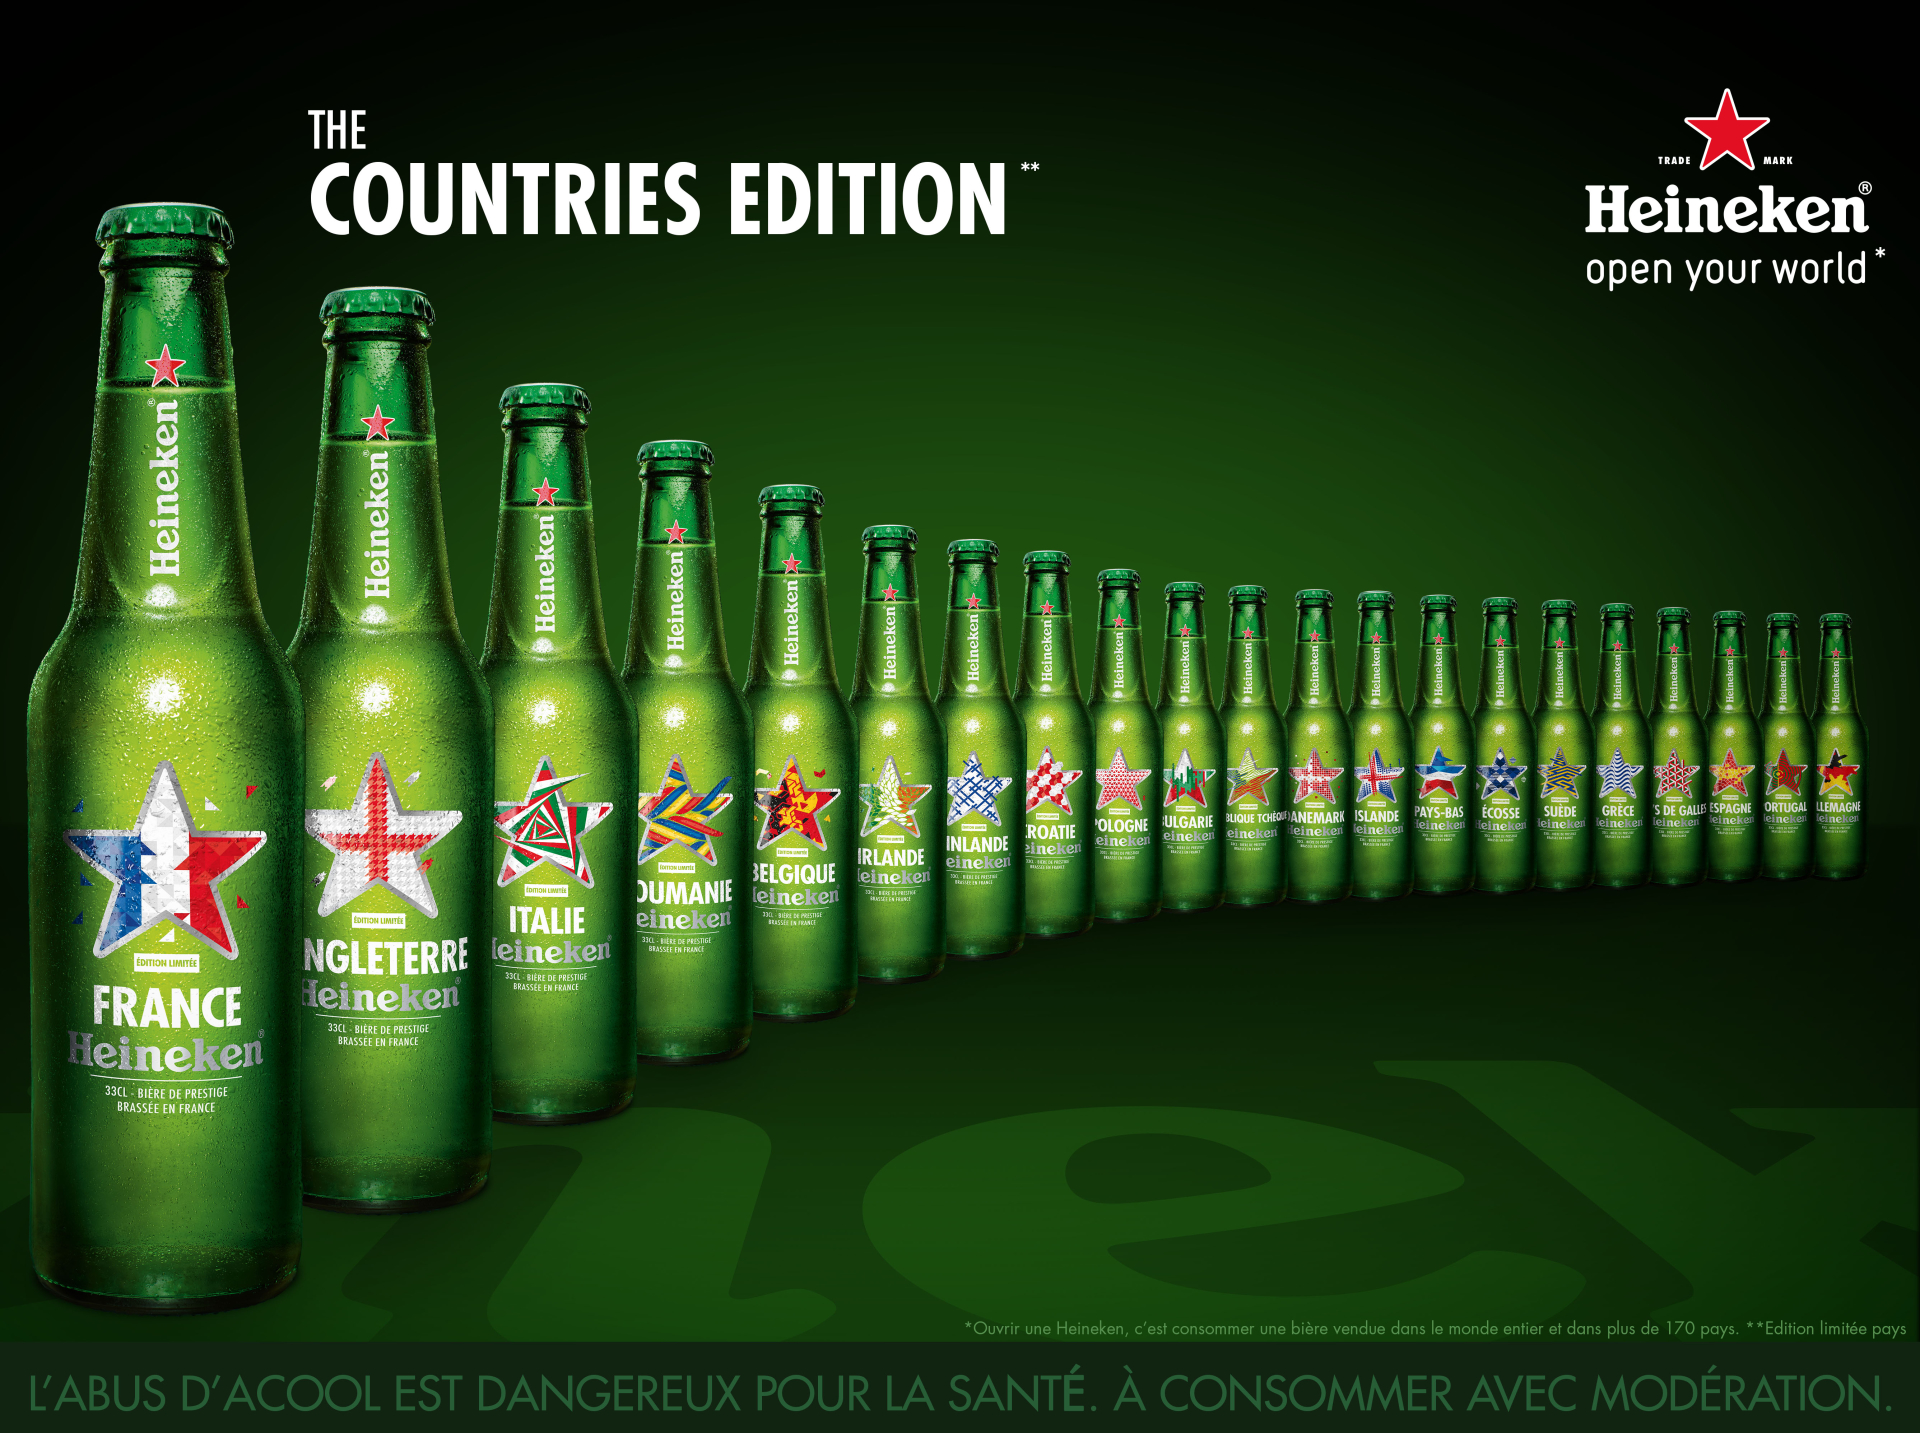 countries edition - design - heineken